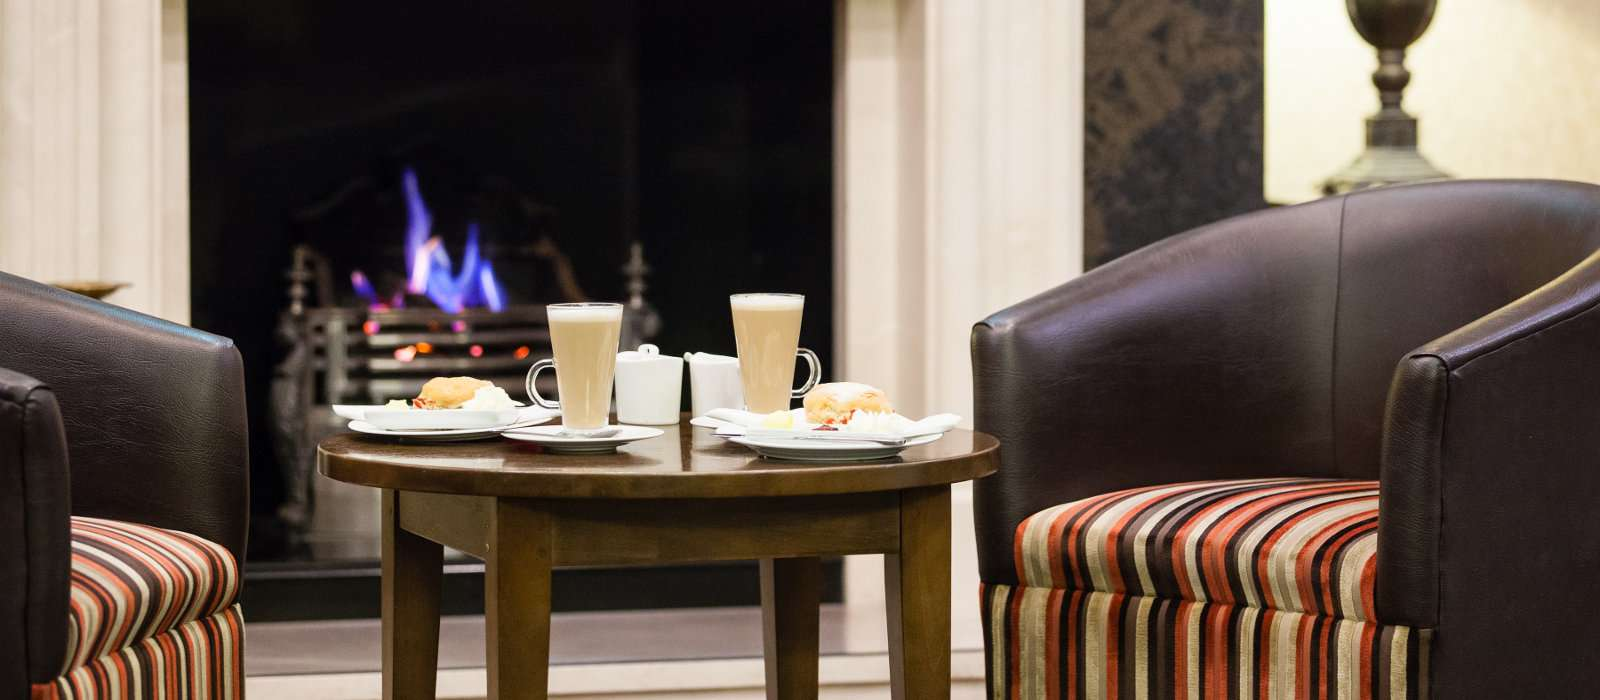 Coffee & Scones at the Lodge Hotel Coleraine